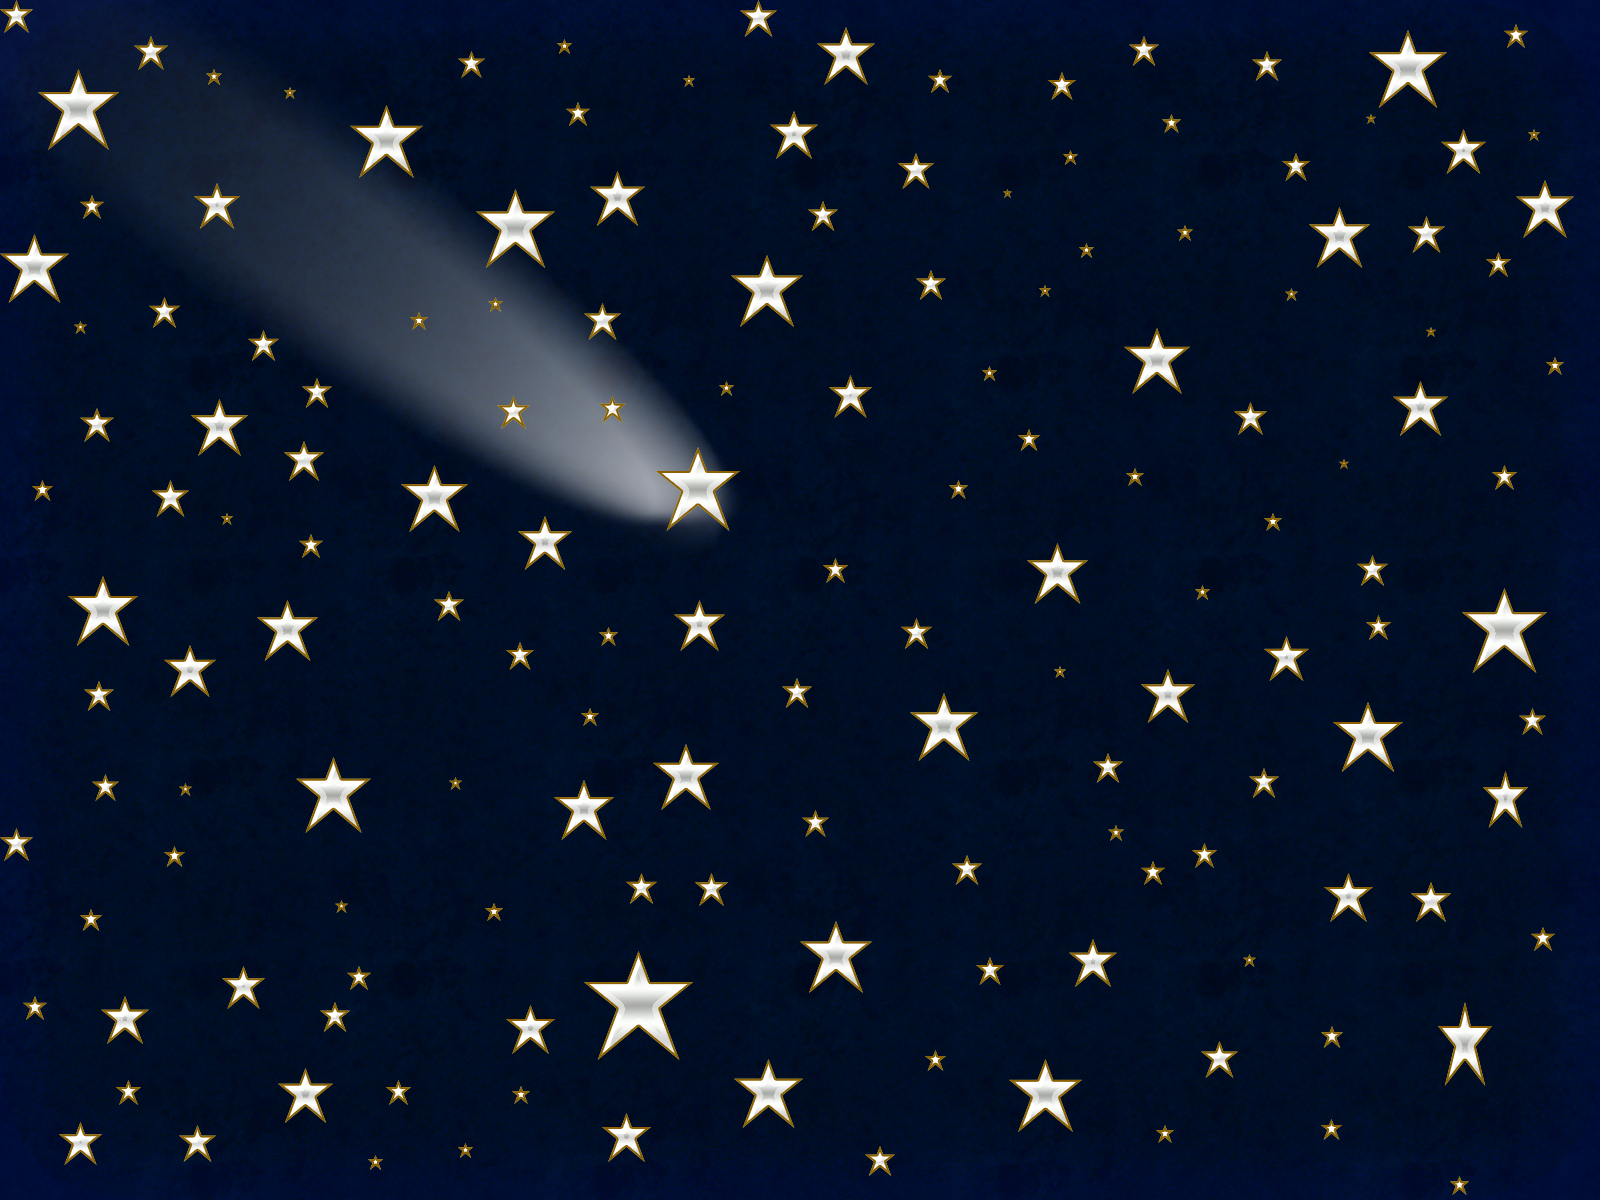 Shooting Star Background 1600x1200